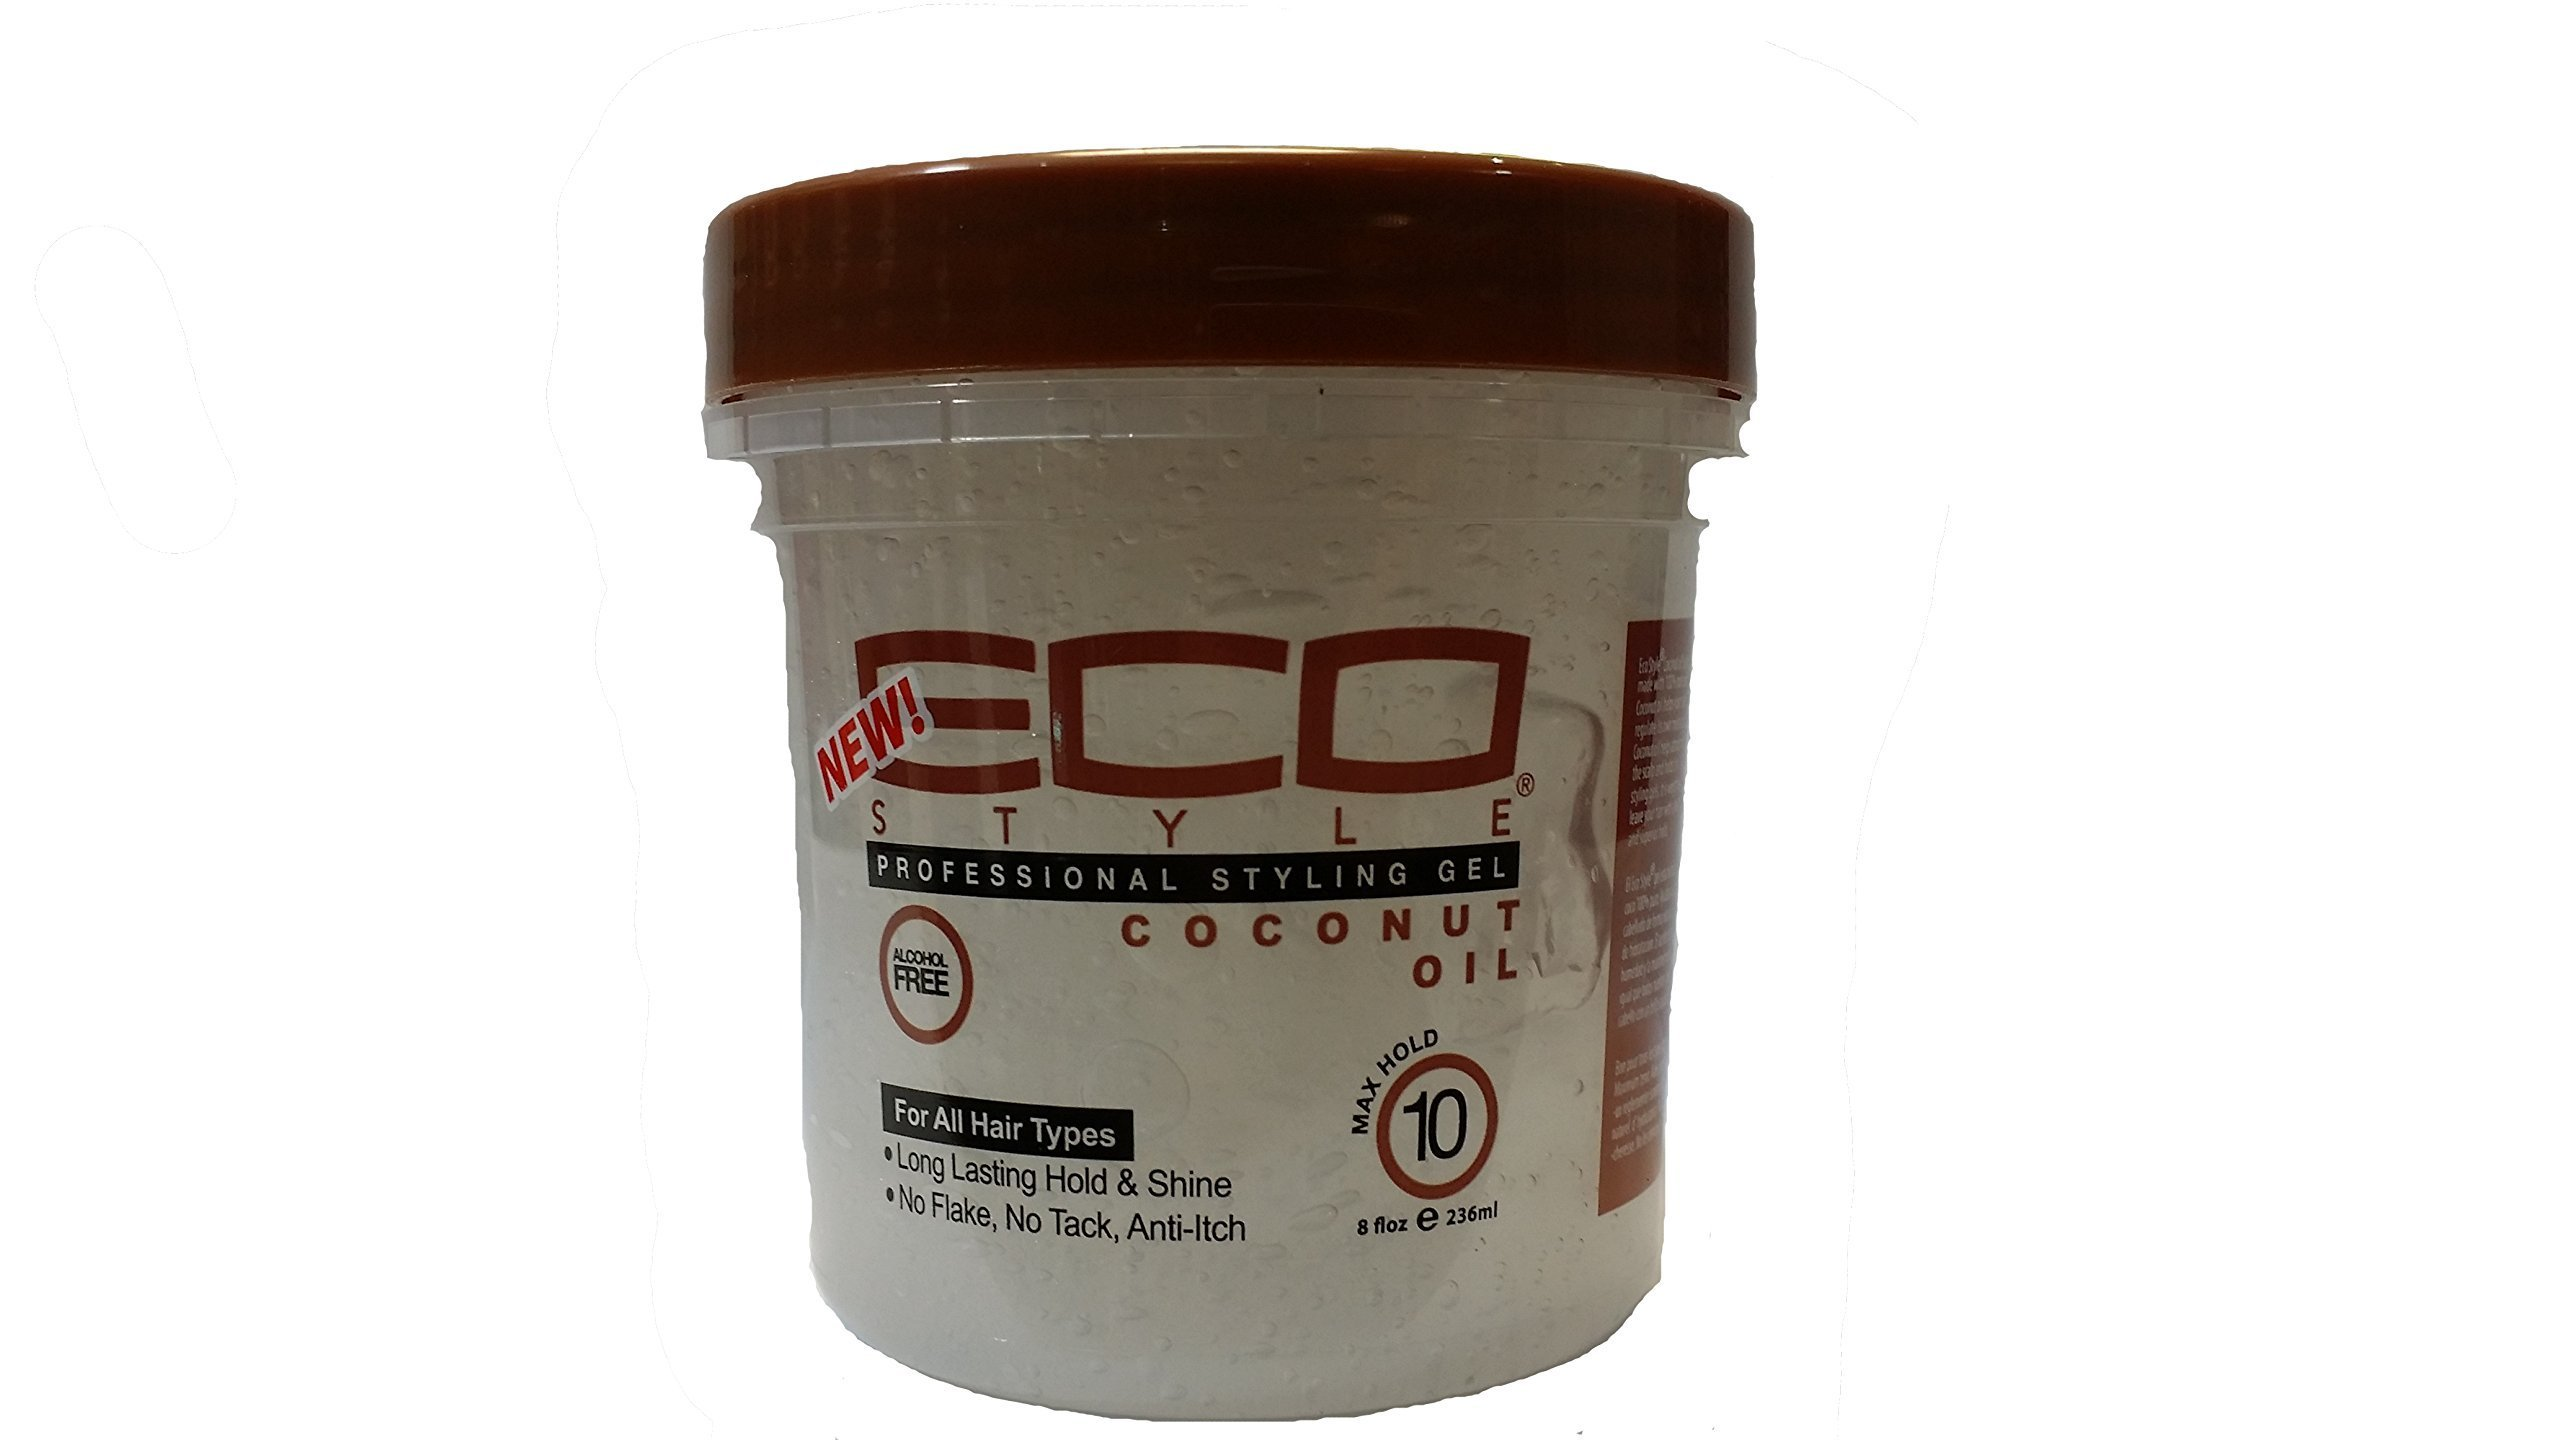 Eco Style Coconut Styling Gel, 8 Ounce